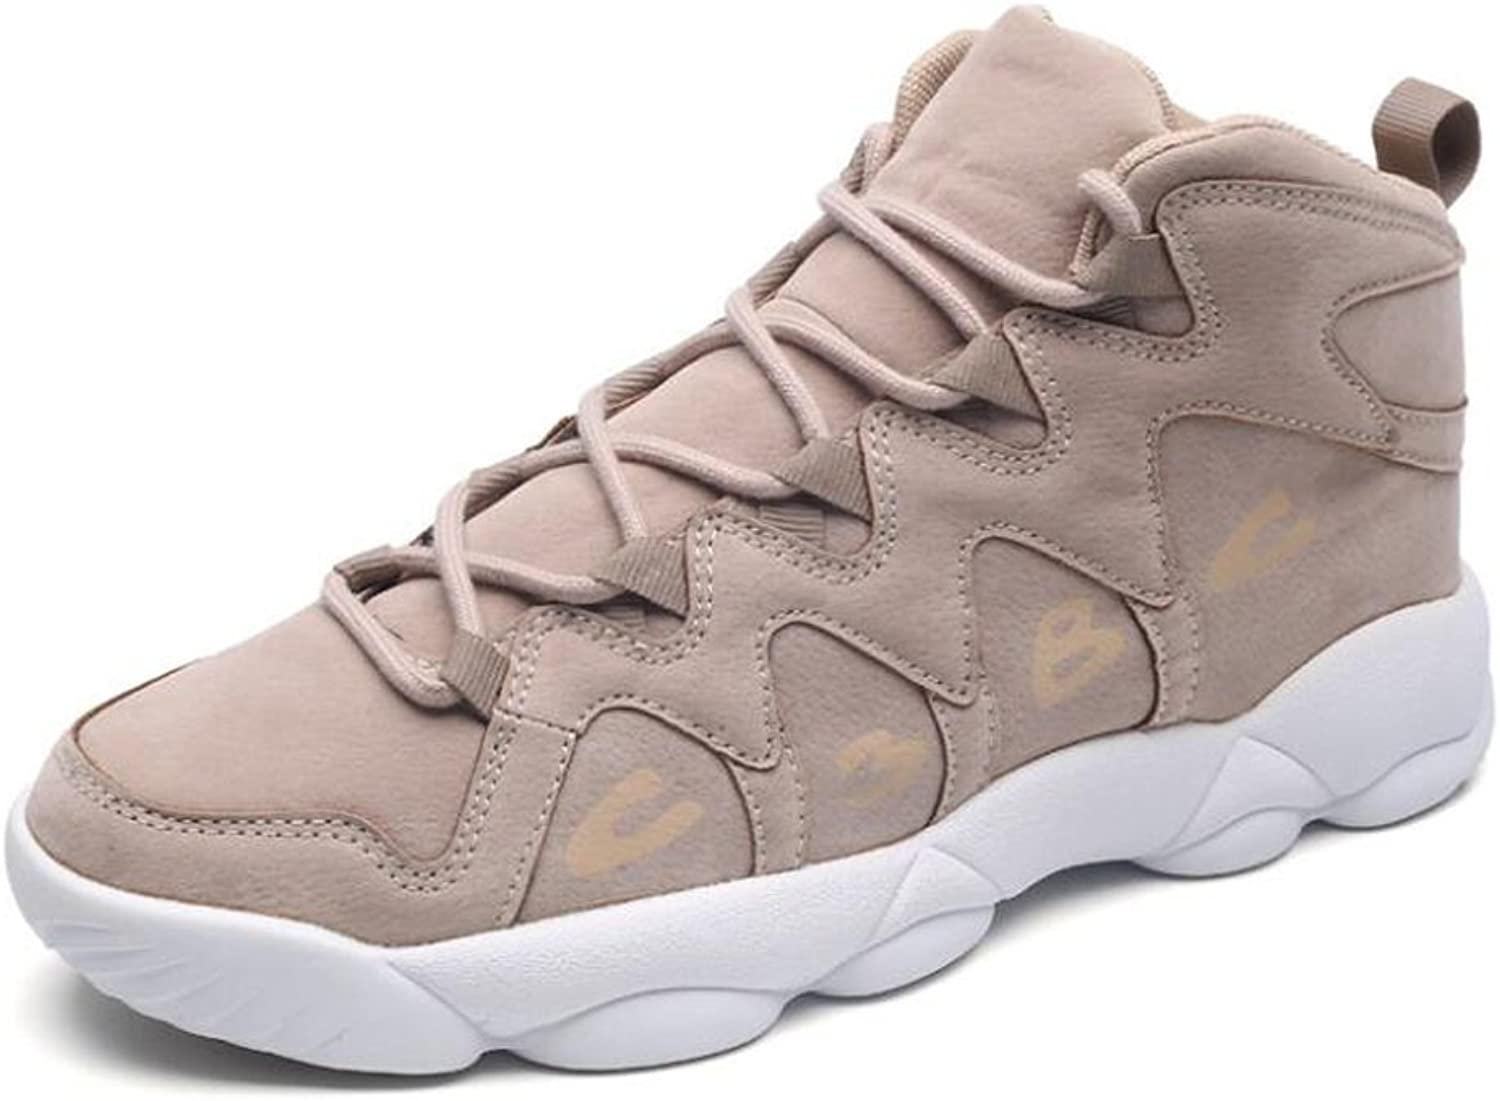 Beauqueen Students Sports shoes Round Toe Mid Tube Lace-up Basketball shoes Cool Design Anti-skid Soles Warm Autumn Winter shoes